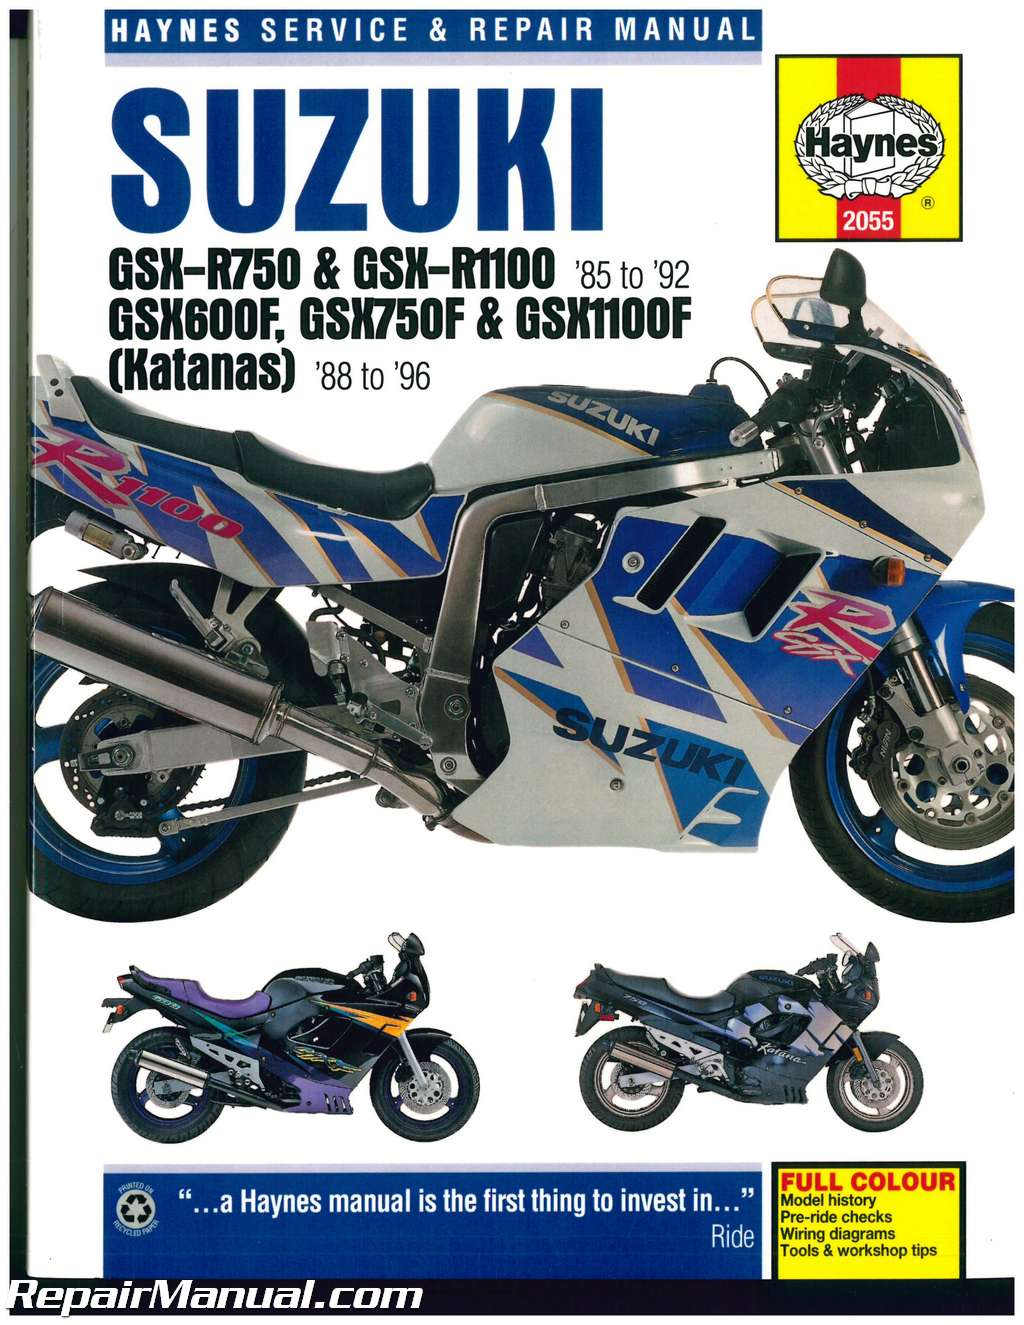 Suzuki GSX-R 750, GSX-R 1100 1985-1992 Katana 600 750 1100 1988-1996 Haynes  Motorcycle Repair Manual